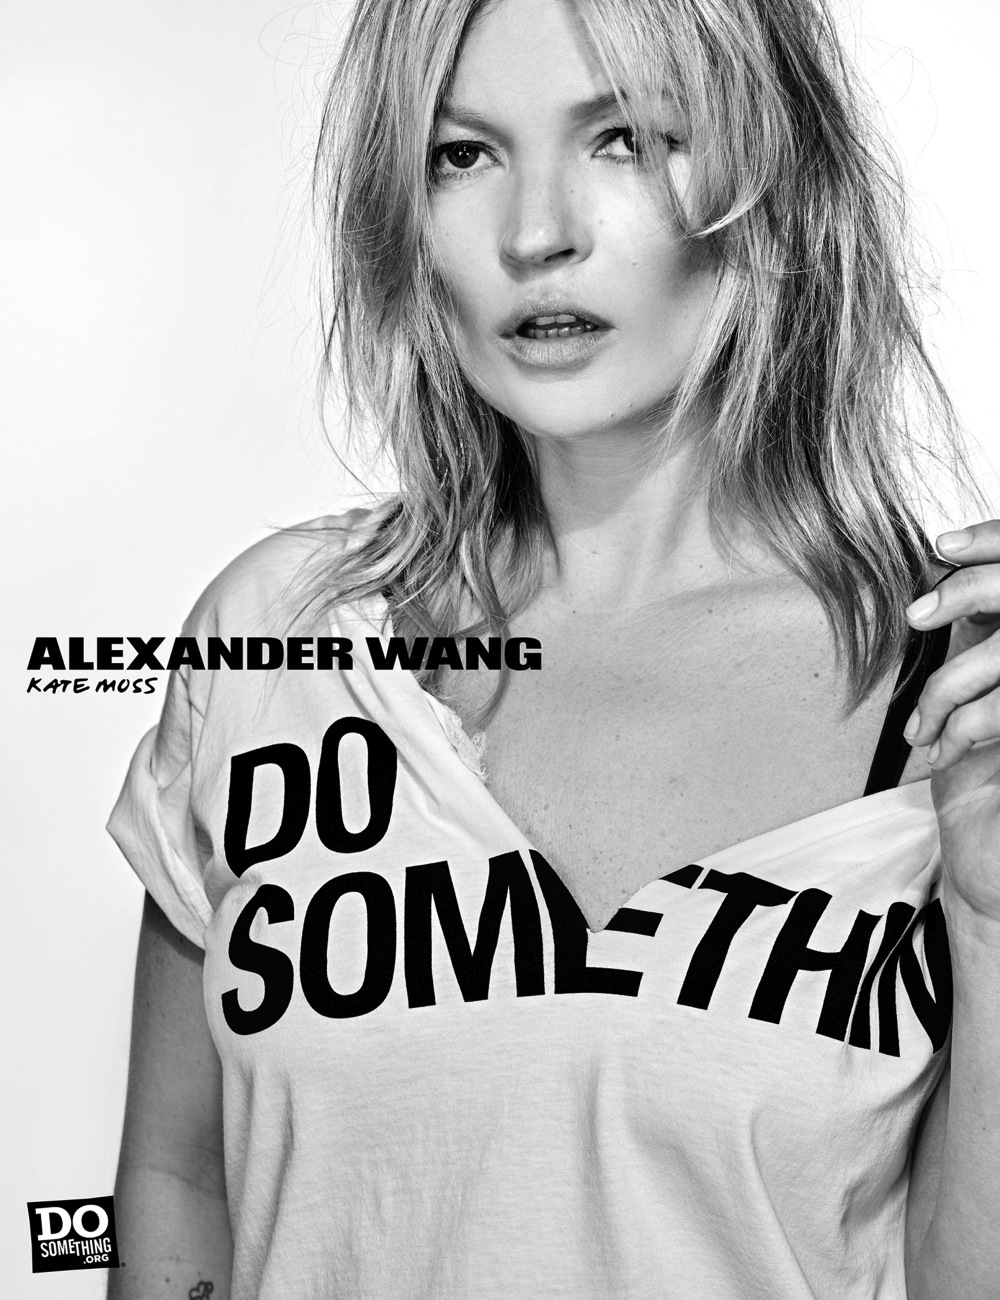 Kate Moss wears Alexander Wang x DoSomething